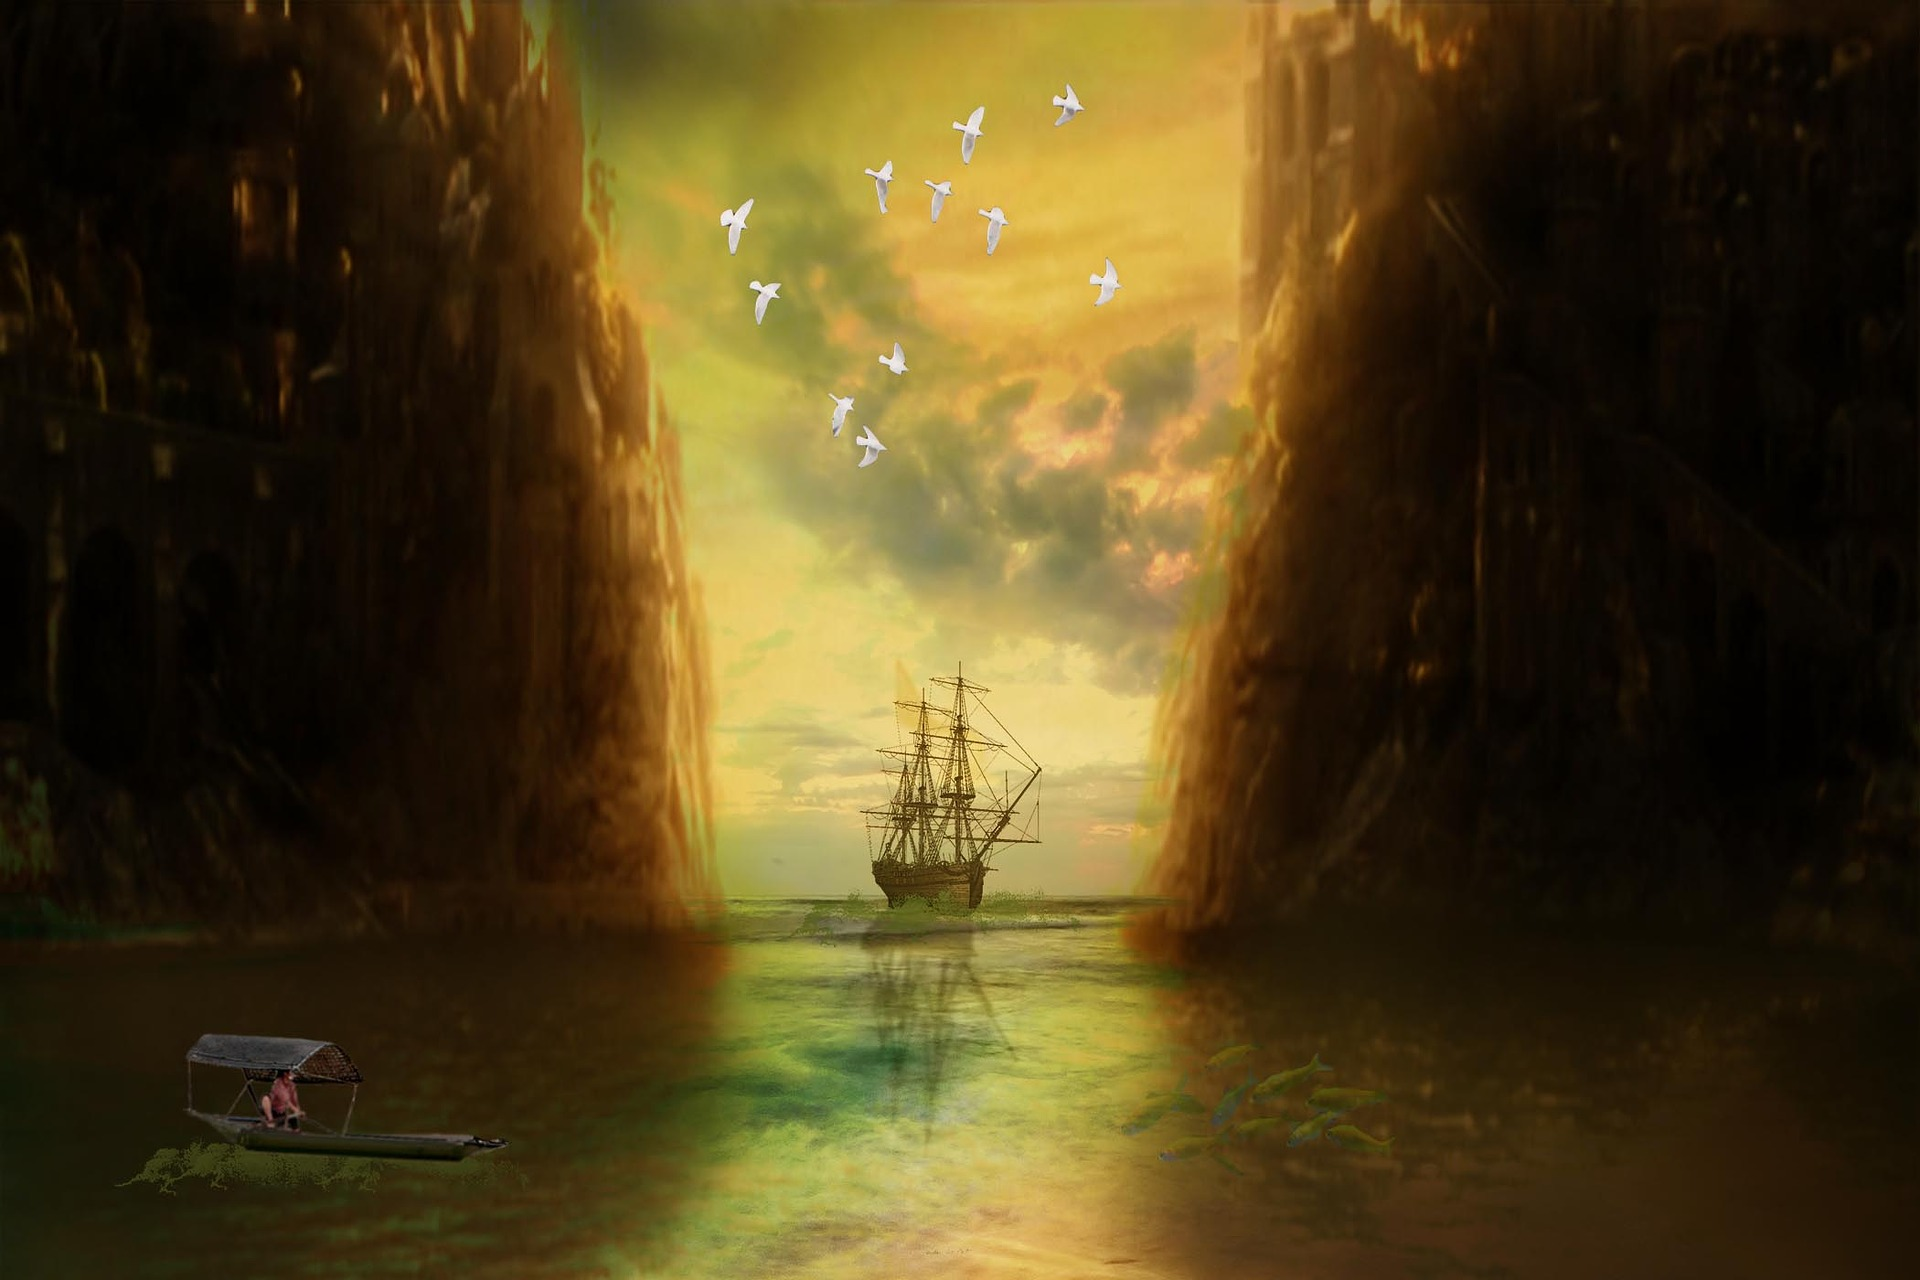 In this image, a ship navigates past two cliff faces to head out into the open sea--much like Theseus now sets sail for the open internet.